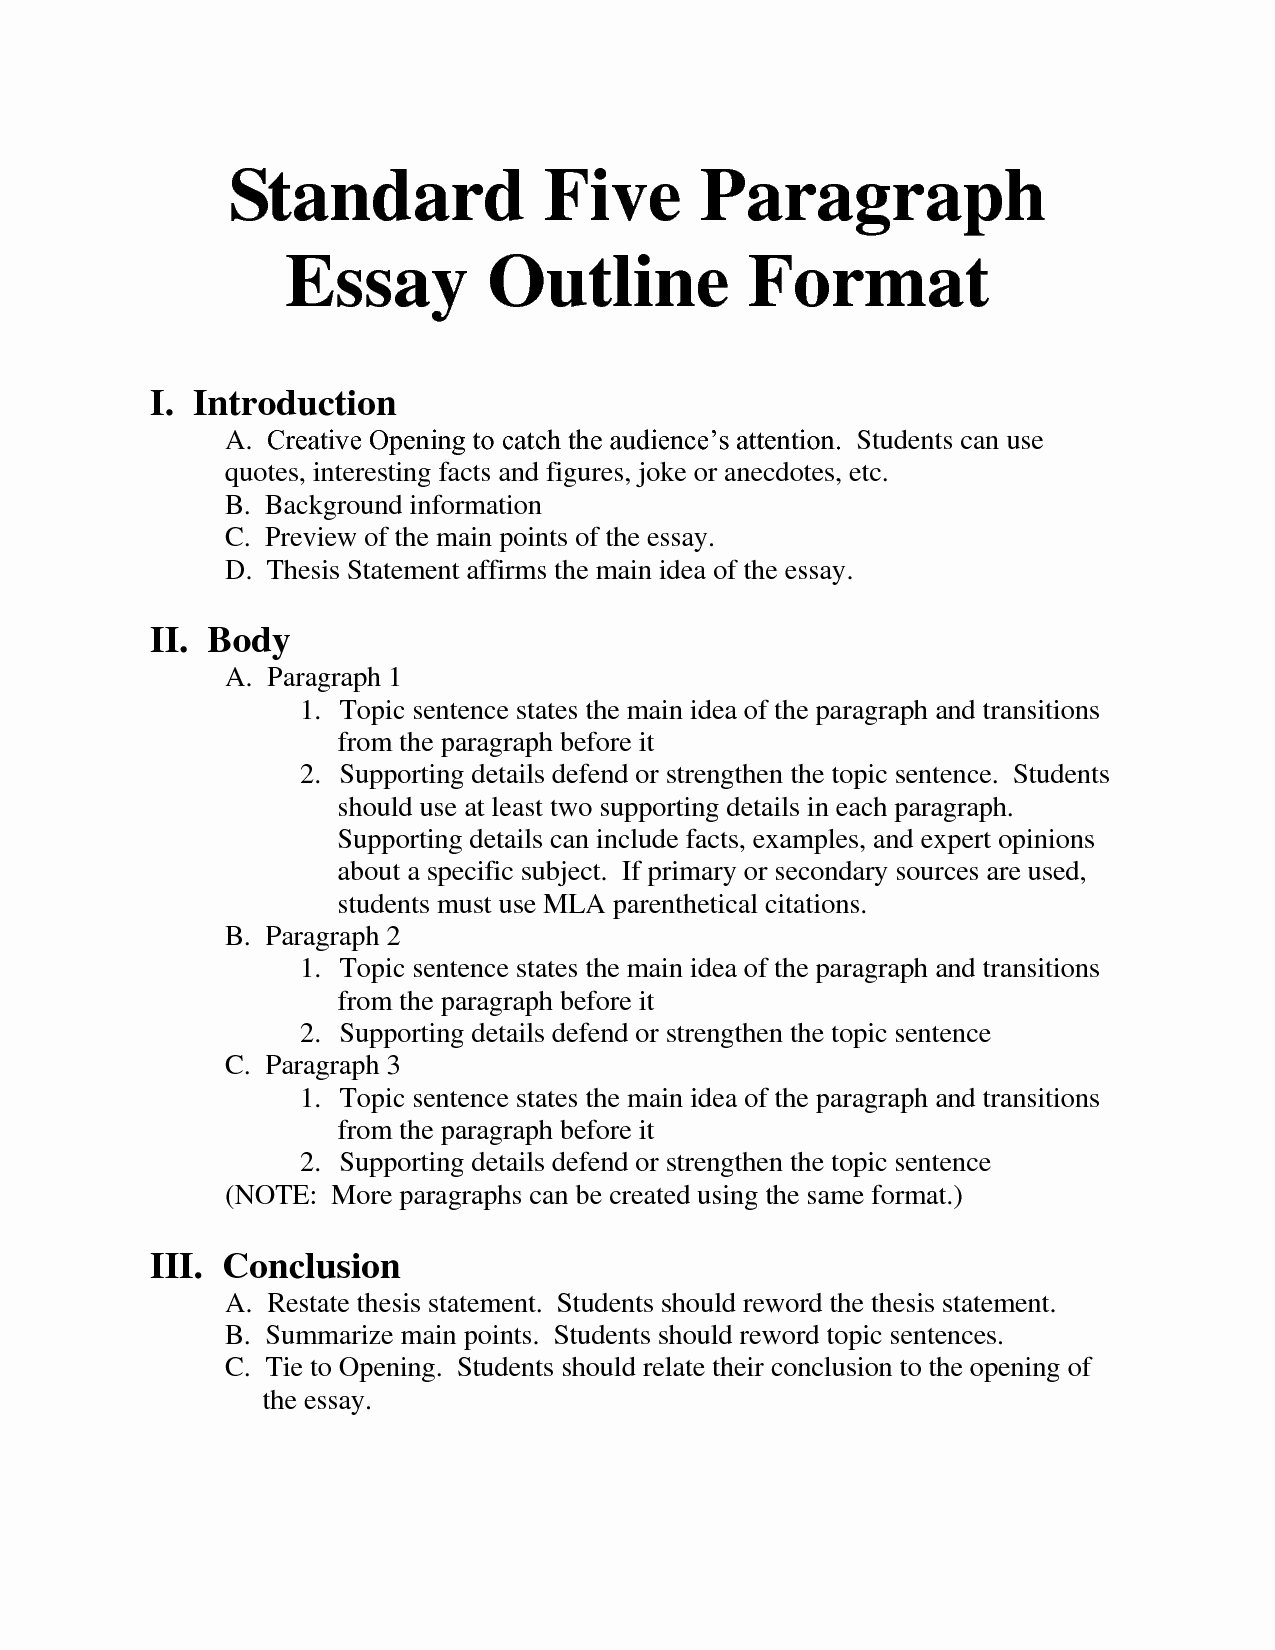 003 Evaluation Essay Outline Example Unique English Format Movie Of Self Film Template Layout Critical Unforgettable Review Paper Source Full